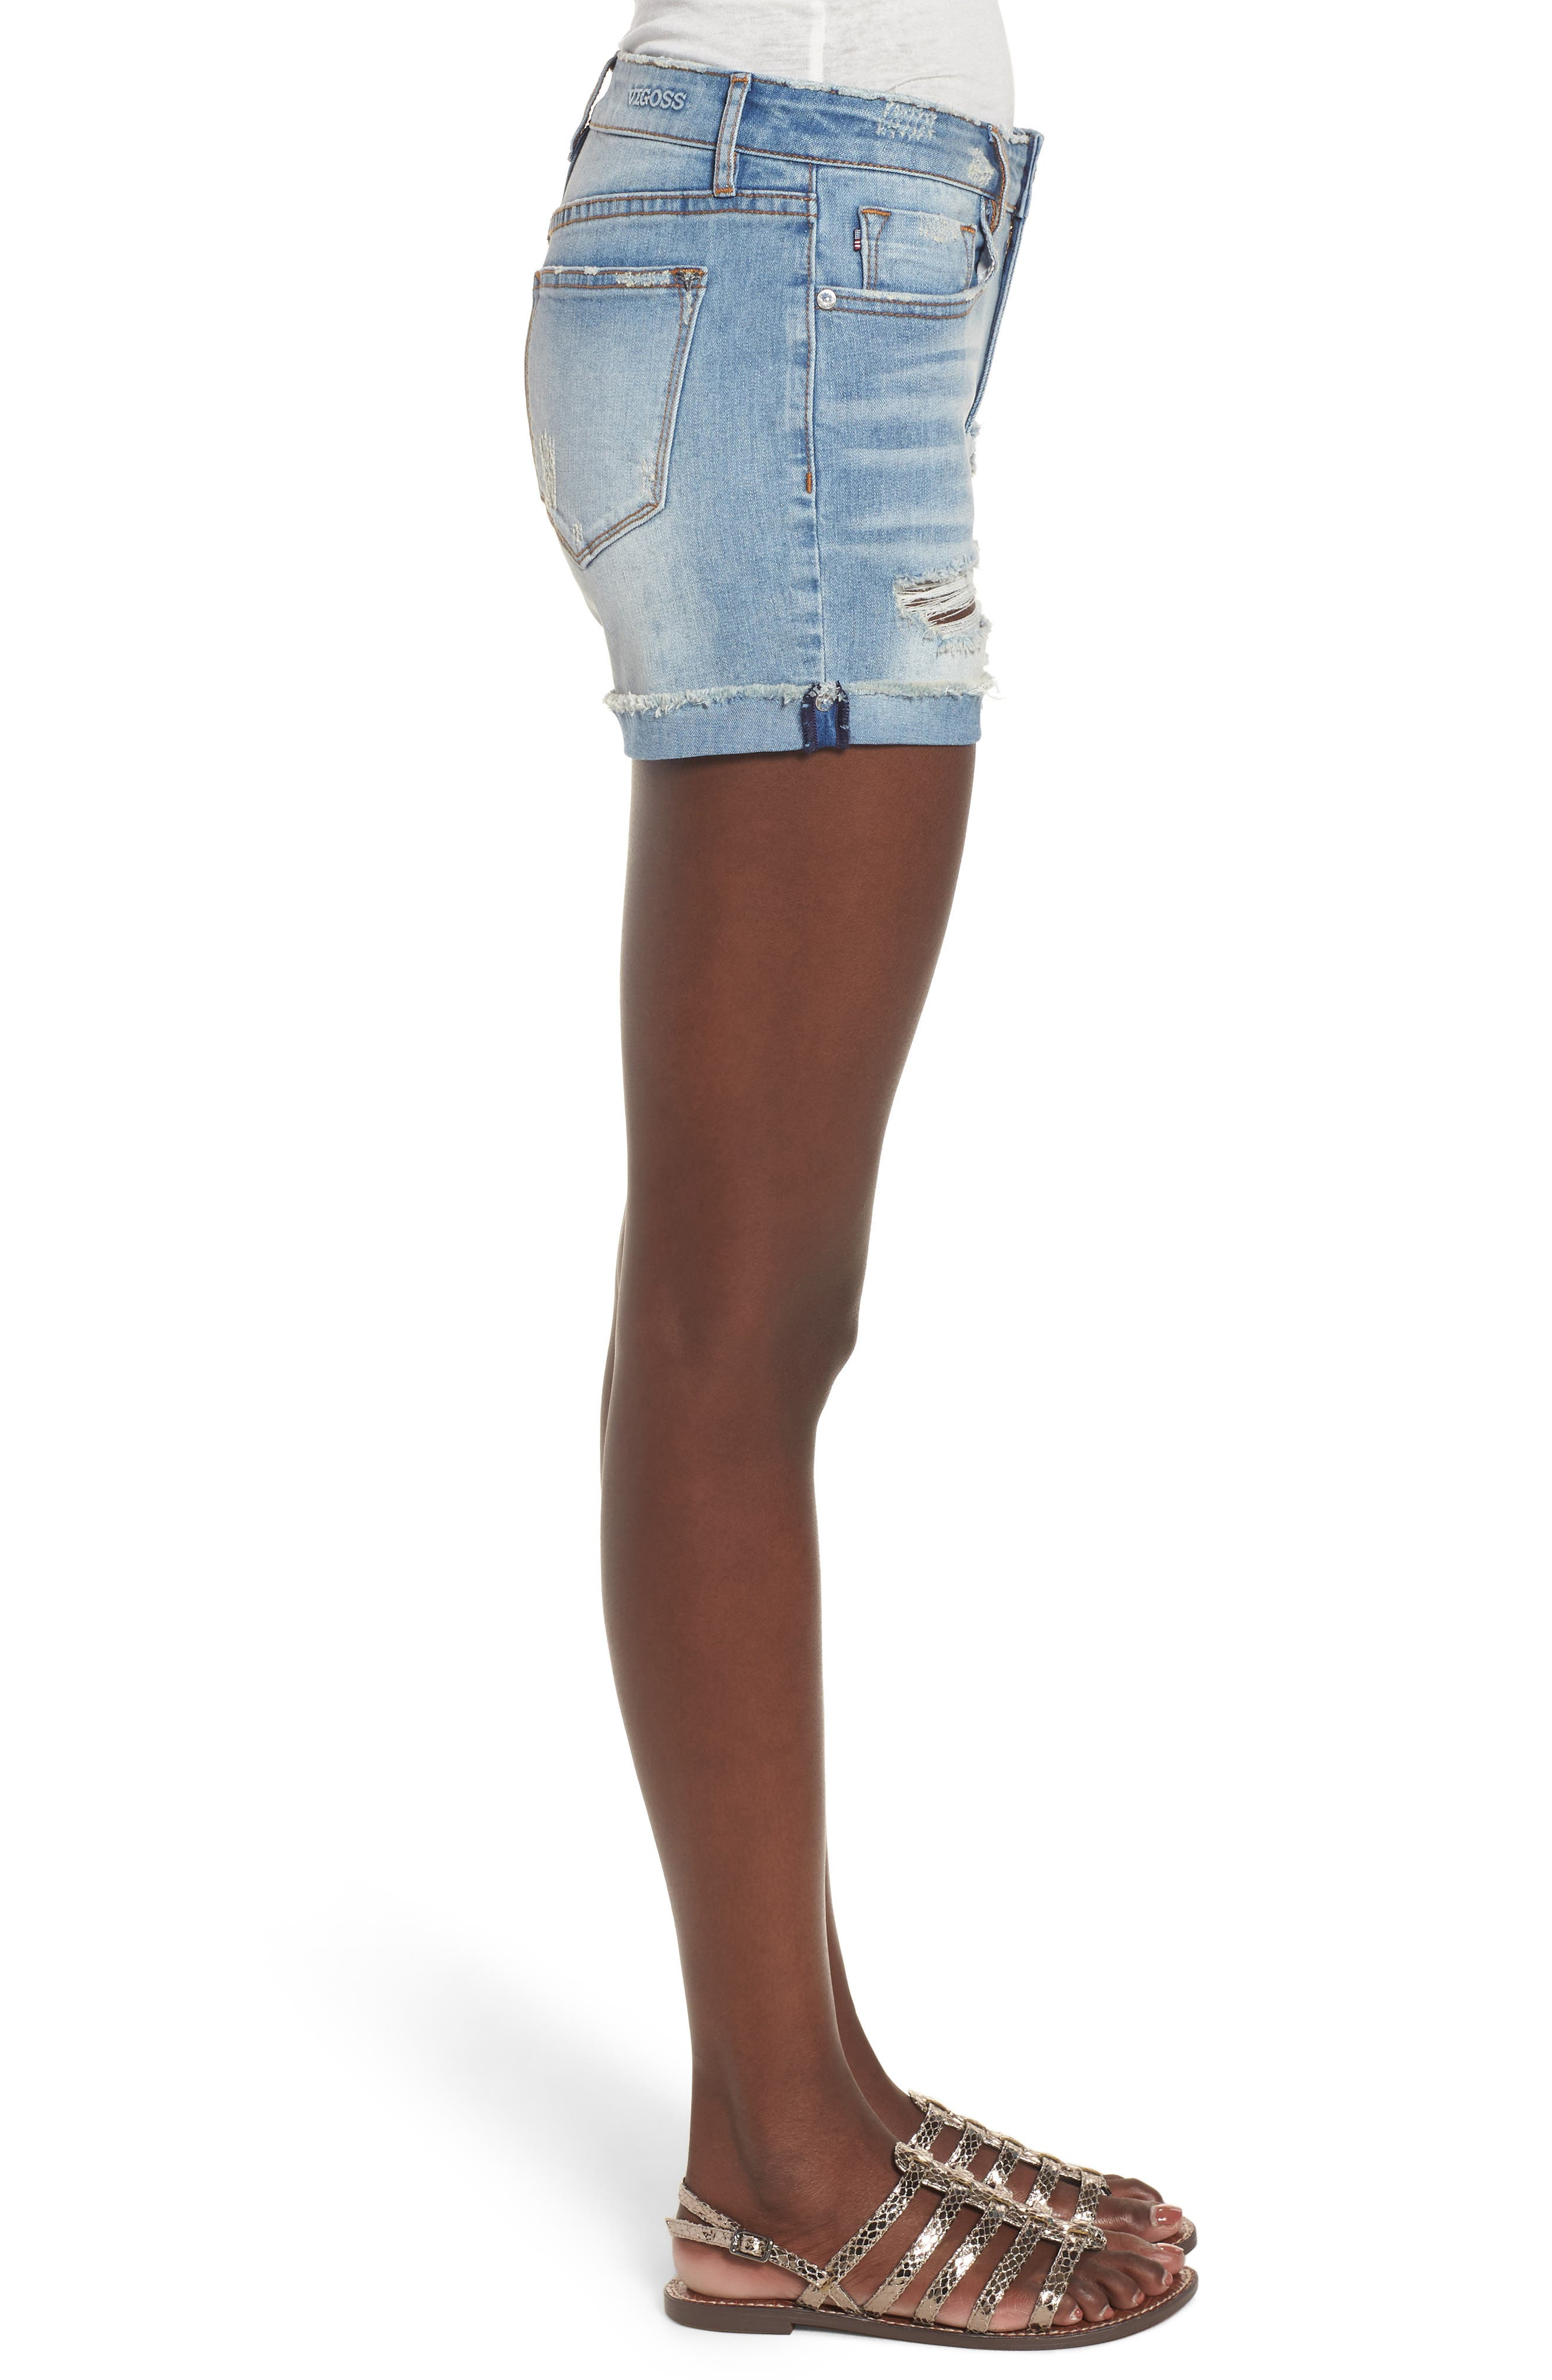 Marley Denim Shorts,                             Alternate thumbnail 3, color,                             461